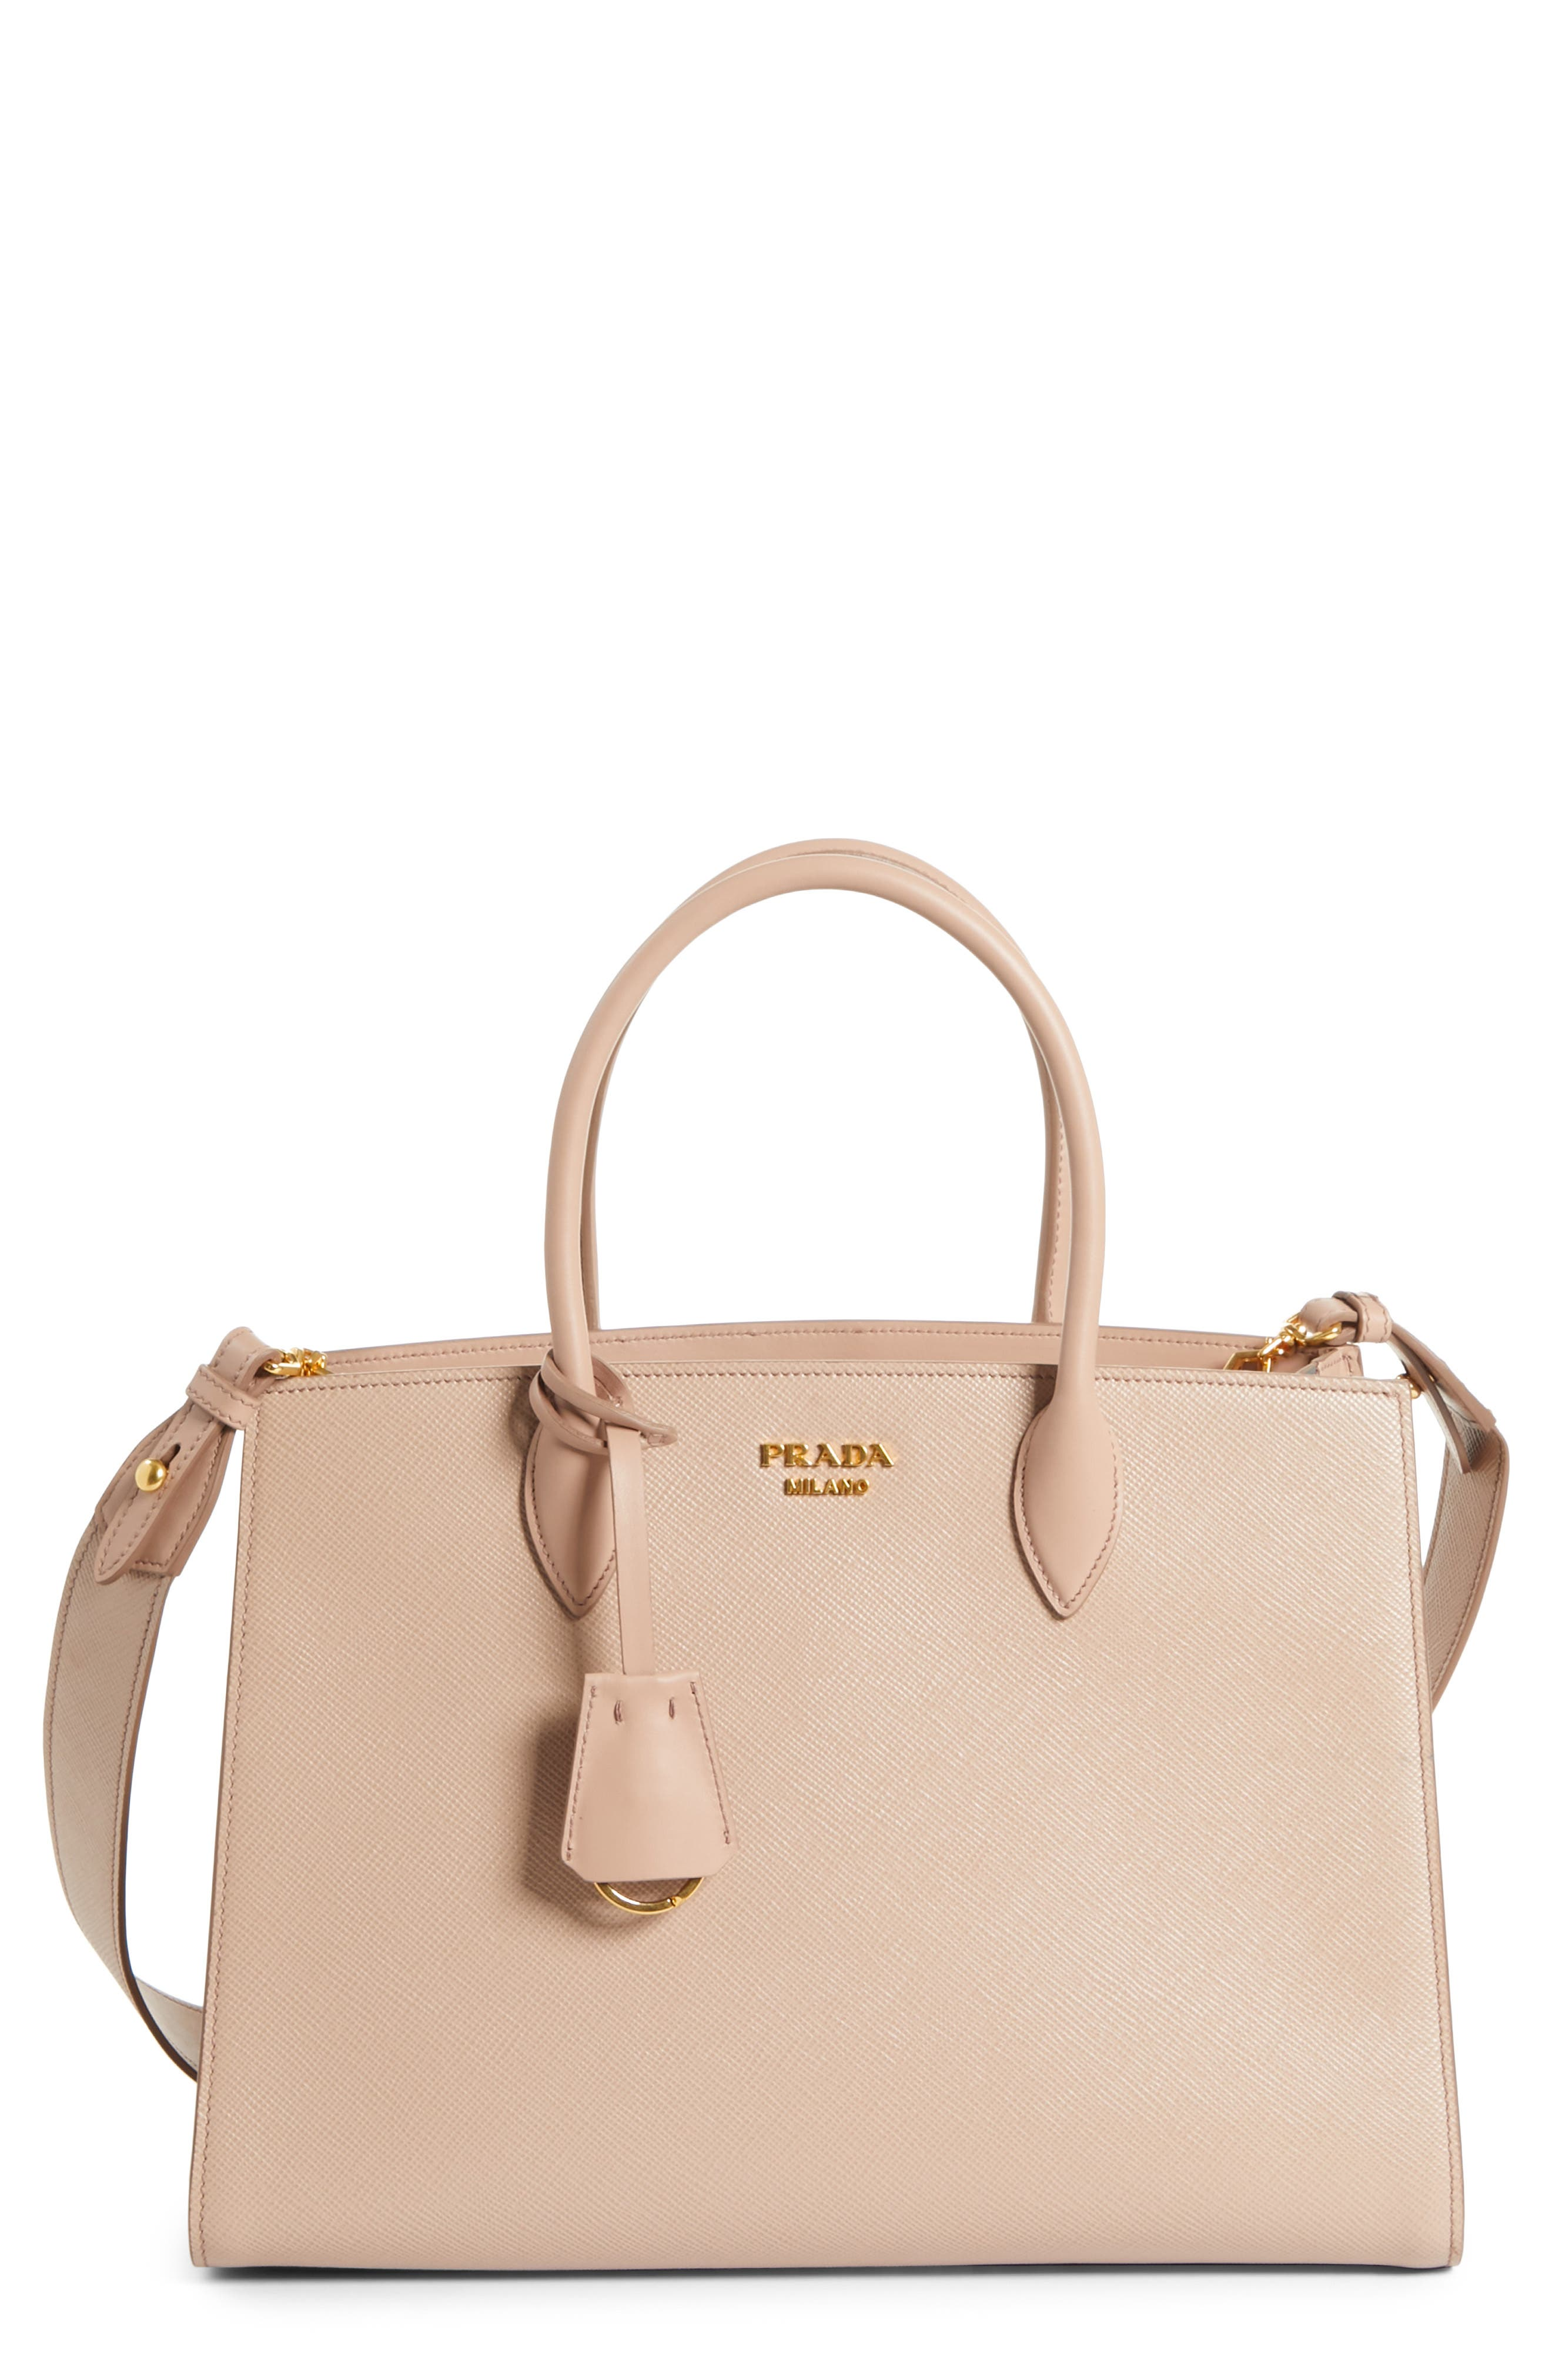 e5598f03e446 ... cheap prada medium saffiano leather tote 9eb67 2a3f5